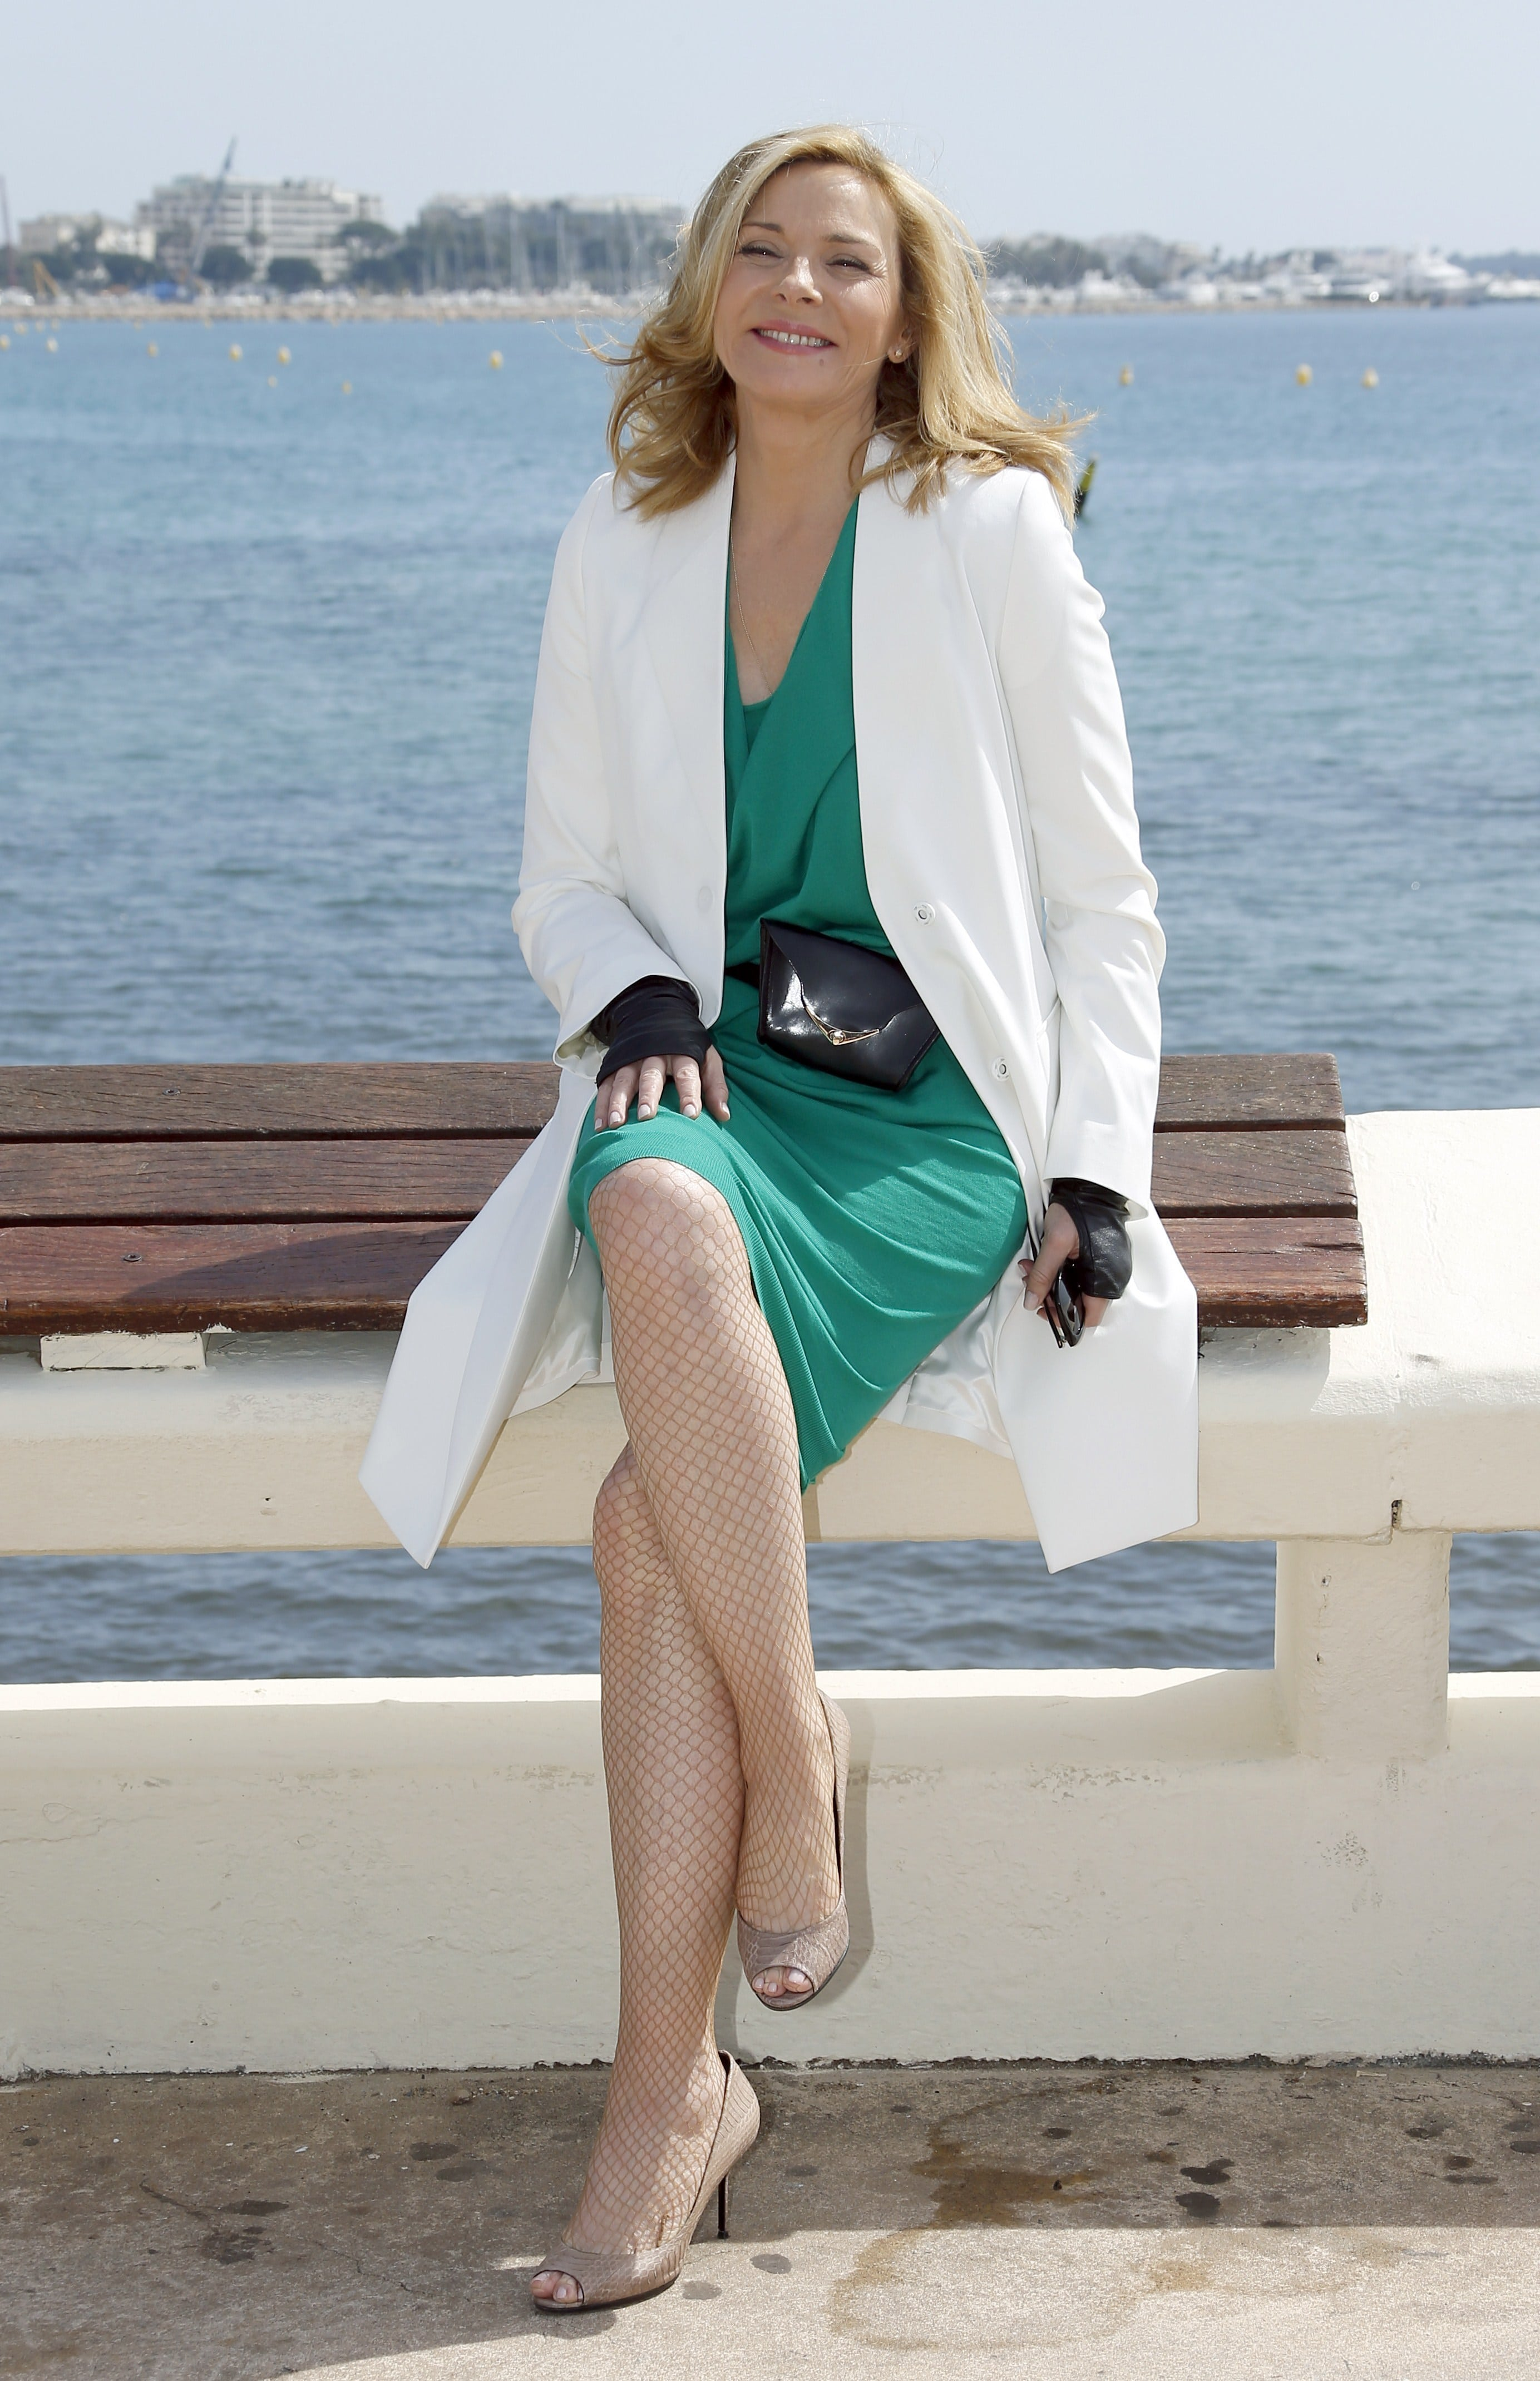 60+ Hot Pictures Of Kim Cattrall Which Are Too Damn